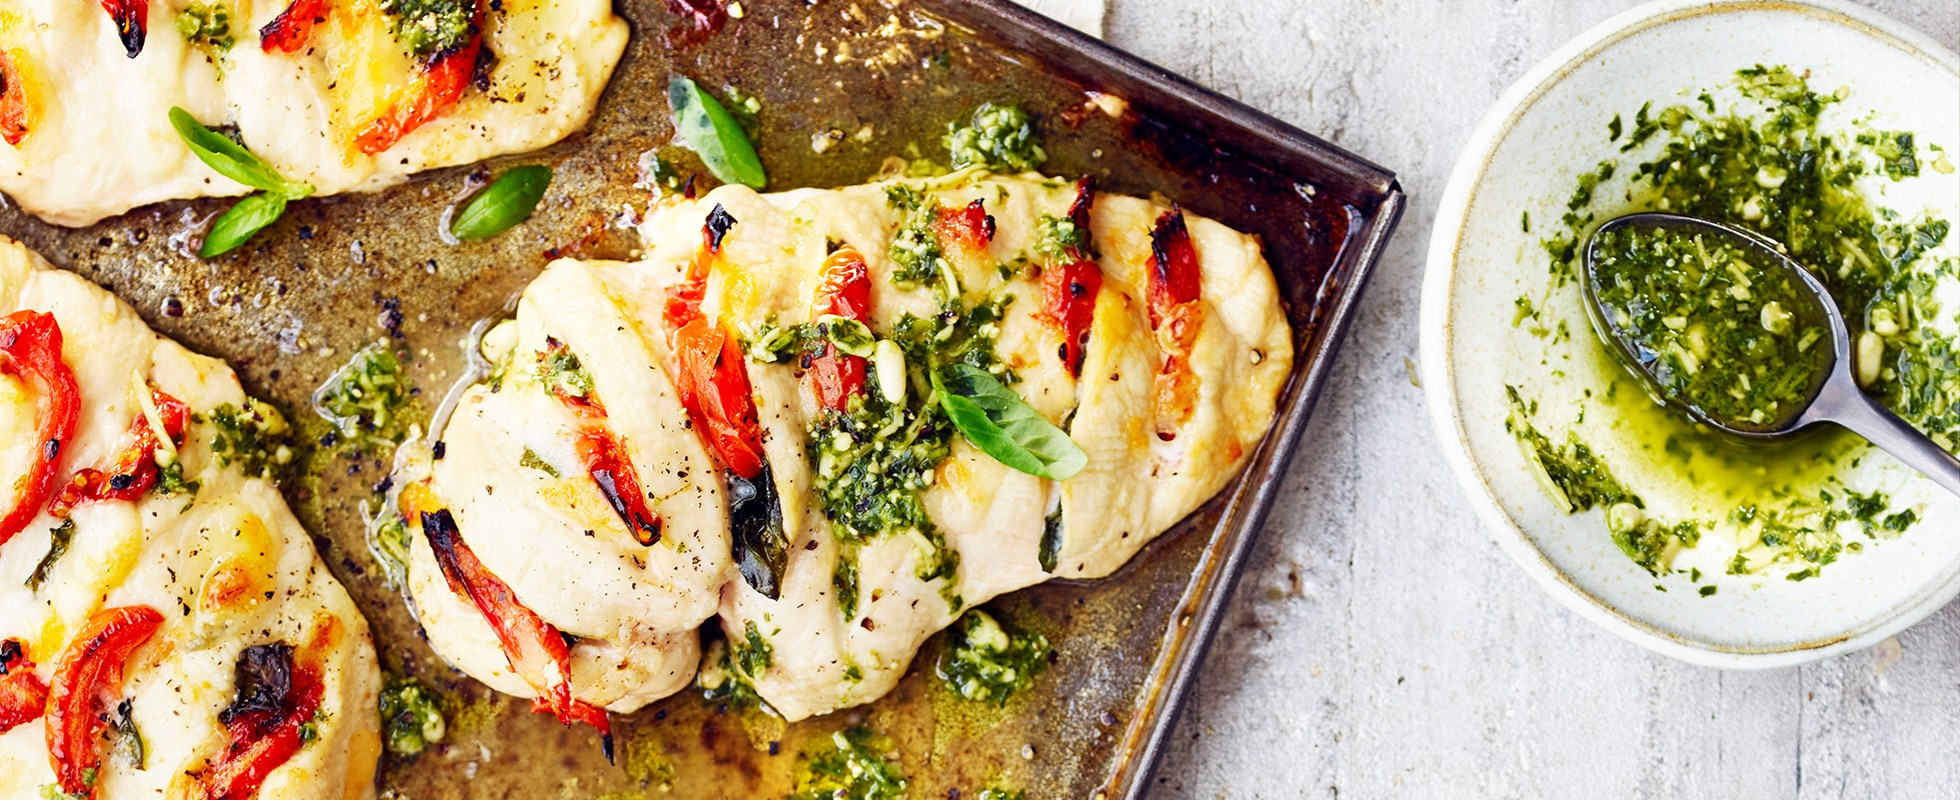 Hasselback chicken tray bake